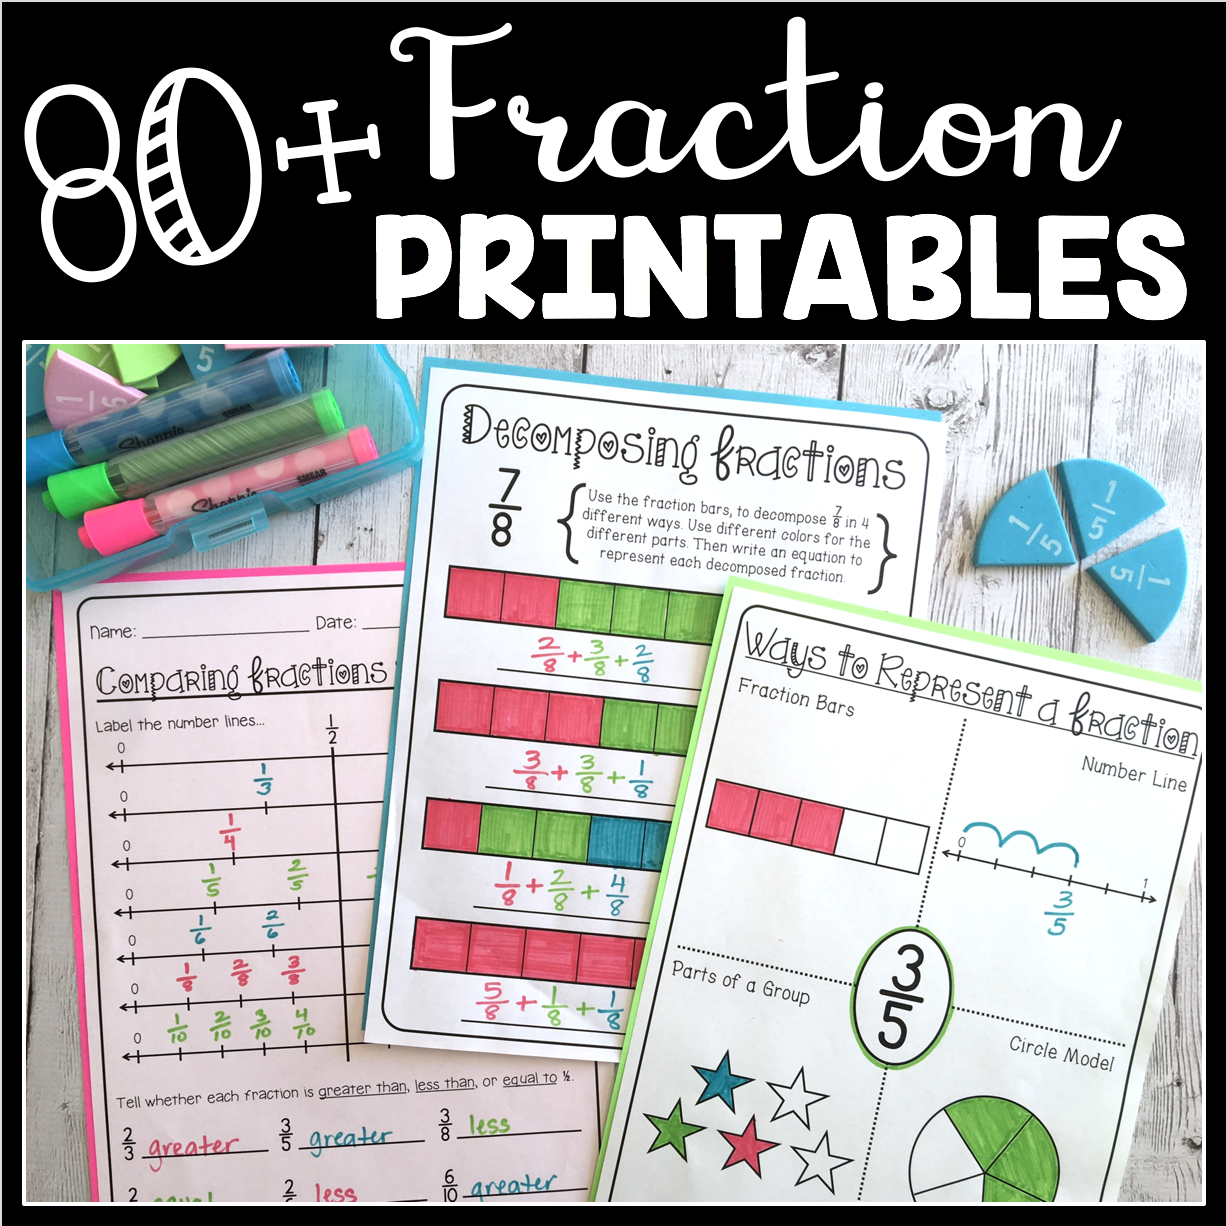 80 Fraction Printables